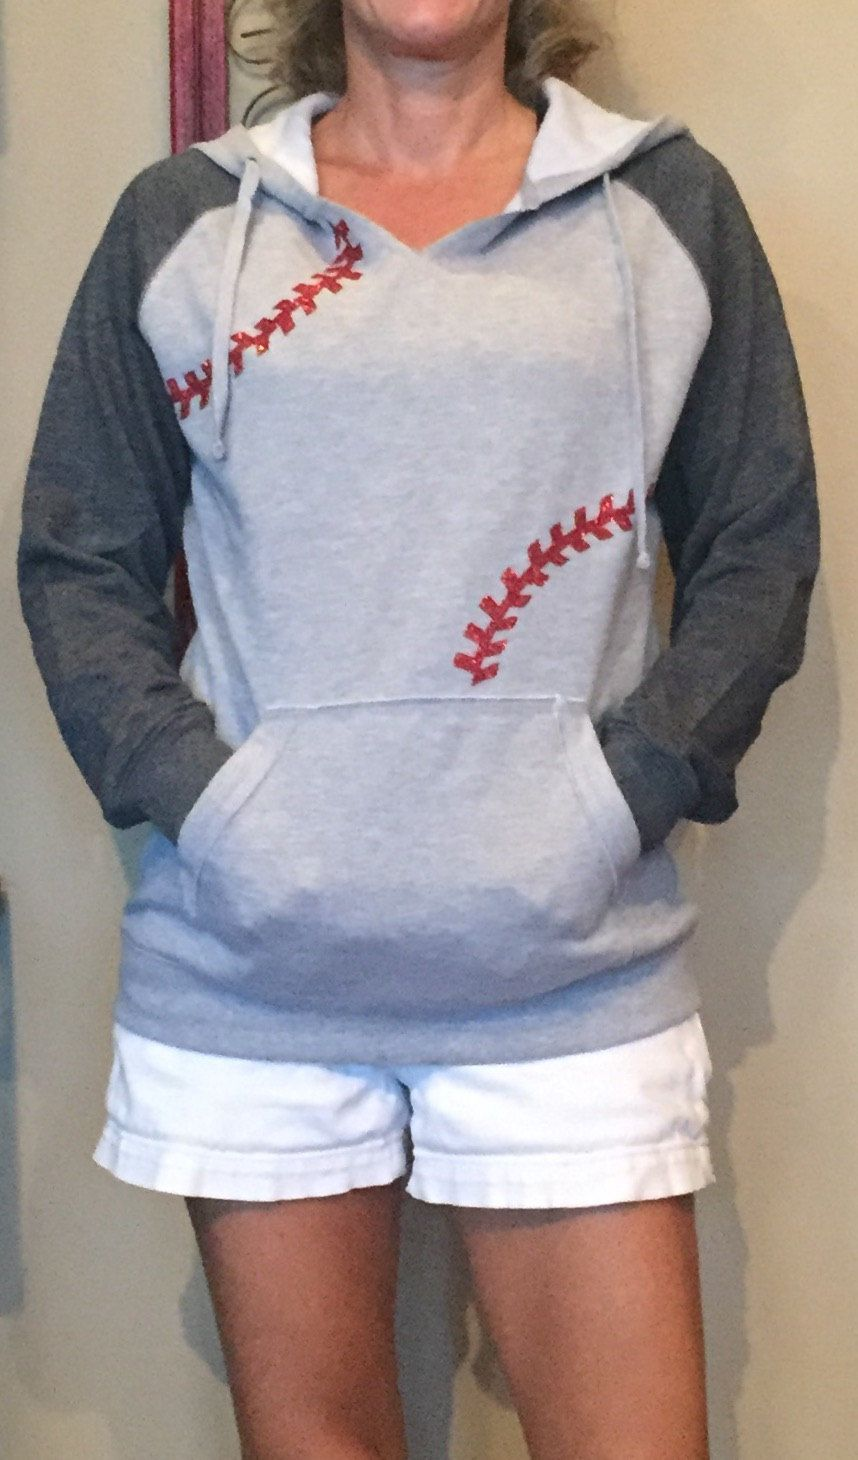 Baseball Seams Hooded Raglan Fleece Sweatshirt, super comfy and warm for early spring ball, features red glitter baseball seams.  Bright colorblocking on the hood and sleeves adds sporty appeal, while the 2x2 rib knit details make it modern. Colorfastness and minimal shrinkage means this soft sweatshirt will keep its great look and fit.  9-ounce, 65/35 ring spun combed cotton/poly fleece Three-panel hood Dyed-to-match drawcords Twill-taped neck Rib knit V patch at neck 2x2 rib knit ...